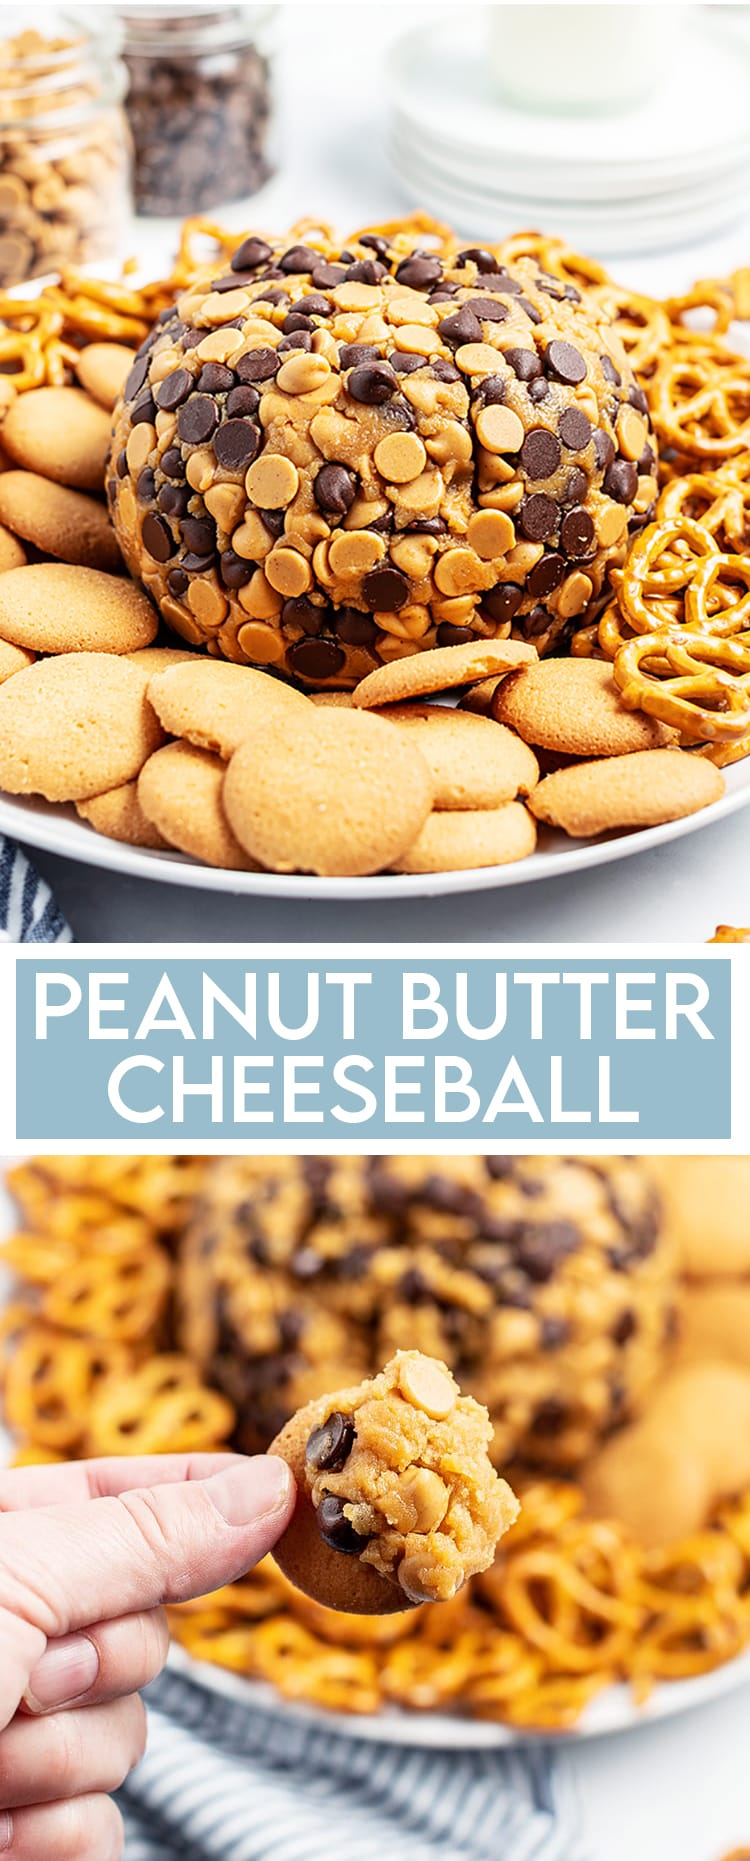 "A peanut butter cheese ball wrapped in chocolate chips and peanut butter chips on a plate with pretzels and cookies, there is a text overlay at the bottom that says ""Peanut Butter Cheeseball"", and underneath some of the cheeseball is on a nilla wafer cookie."